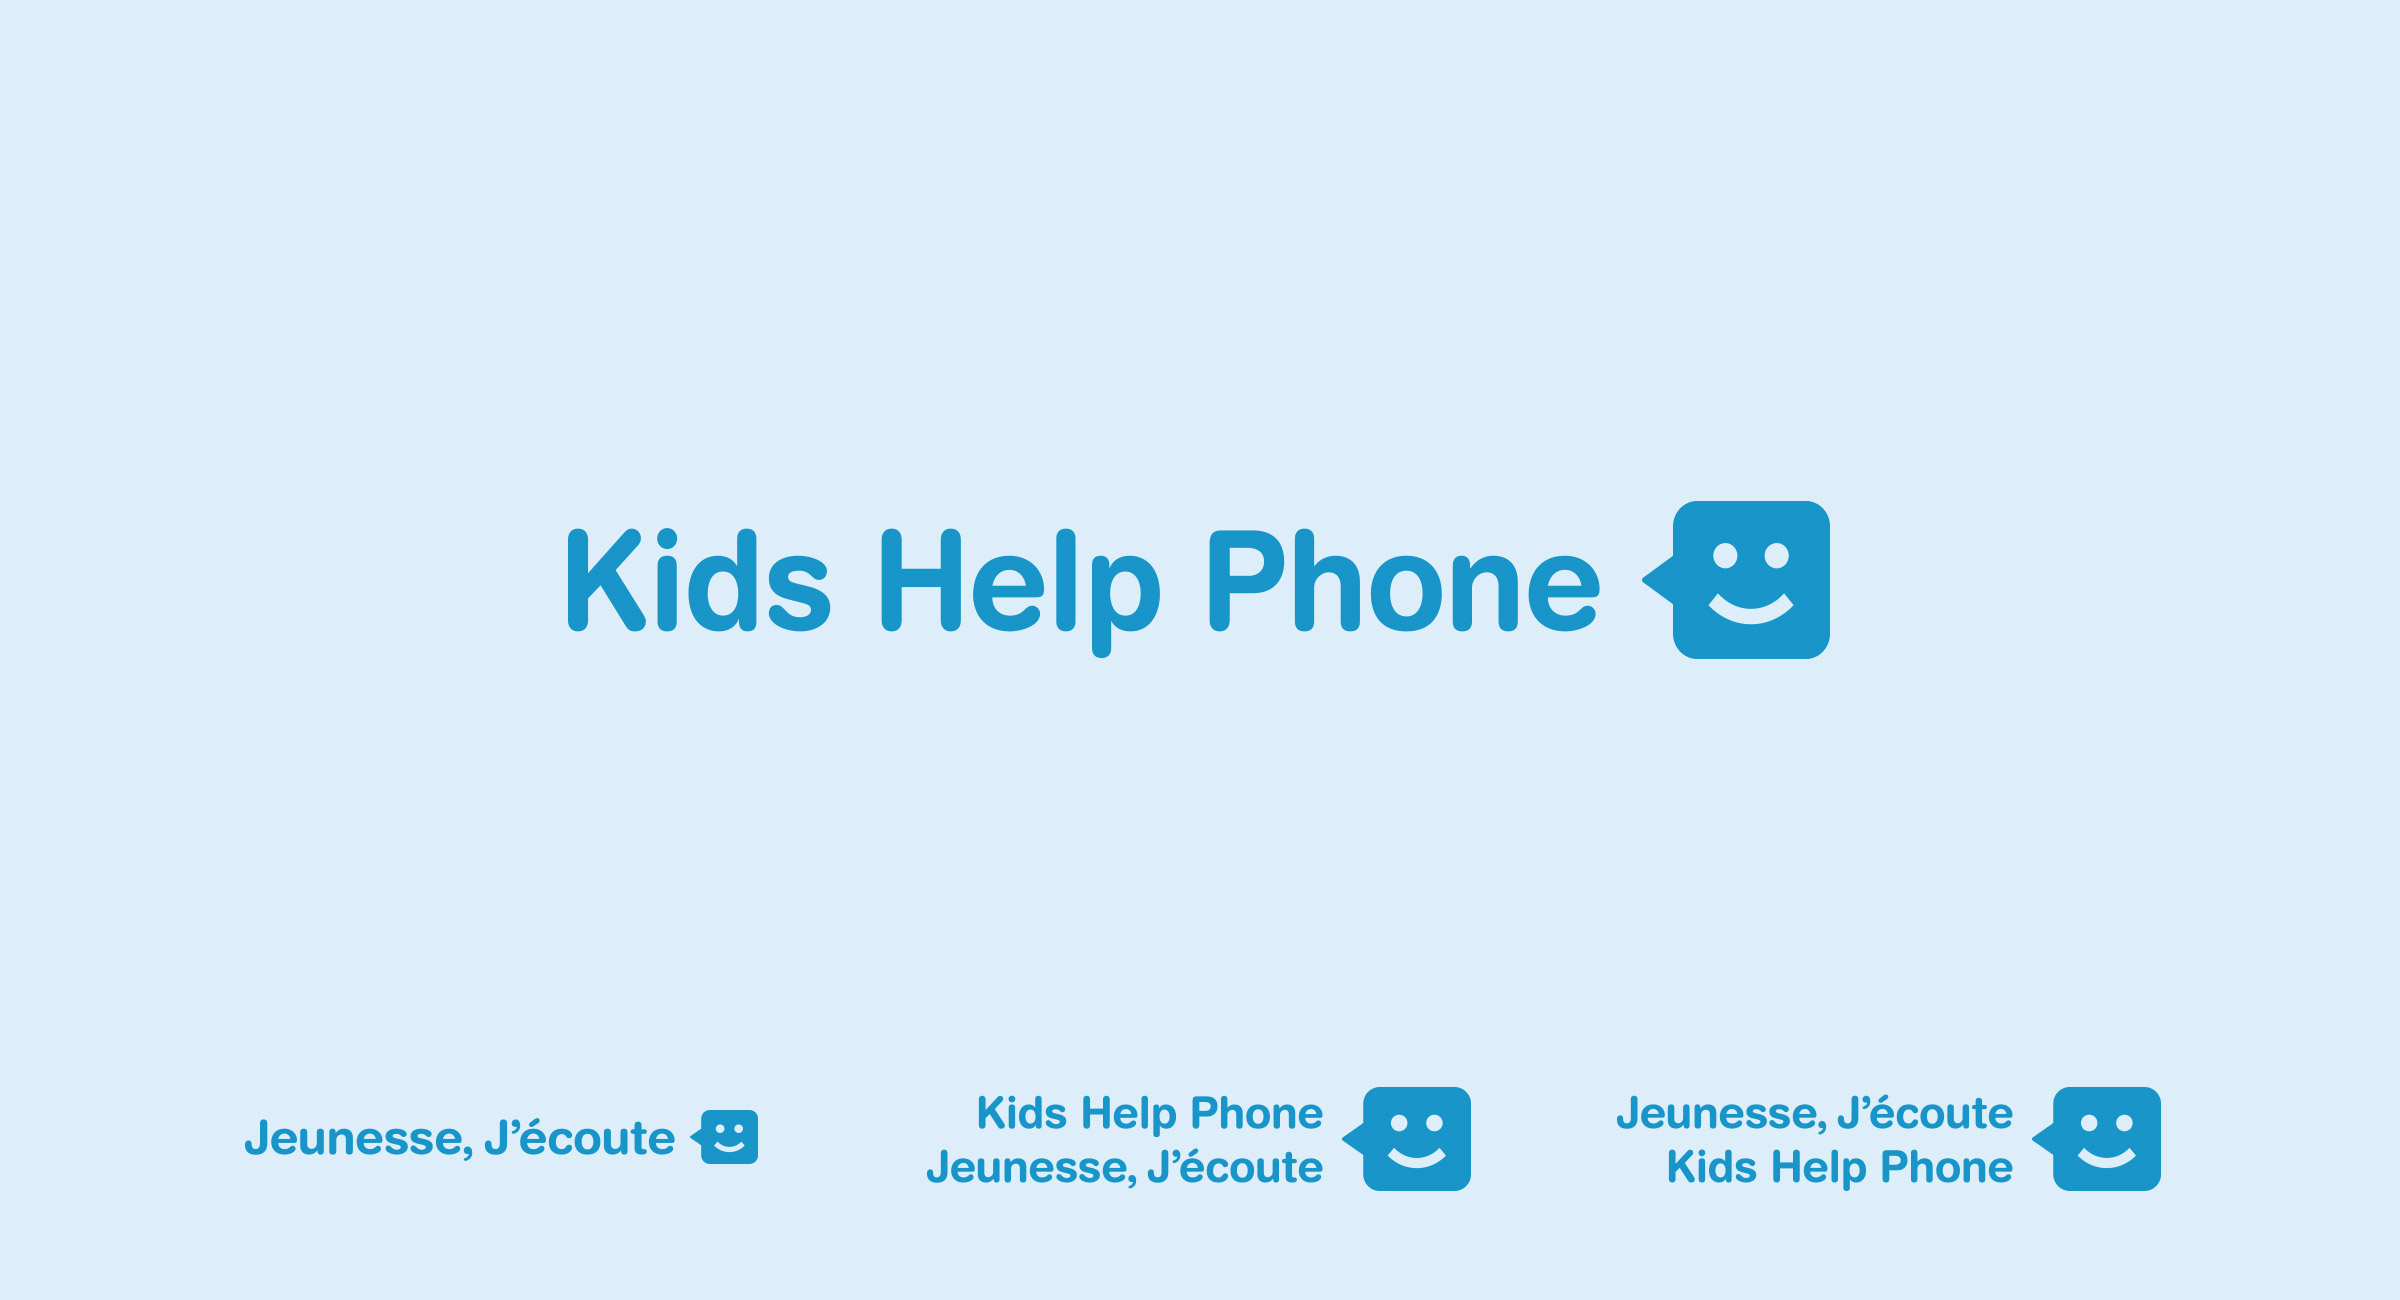 English, French, and bilingual Kids Help Phone logos